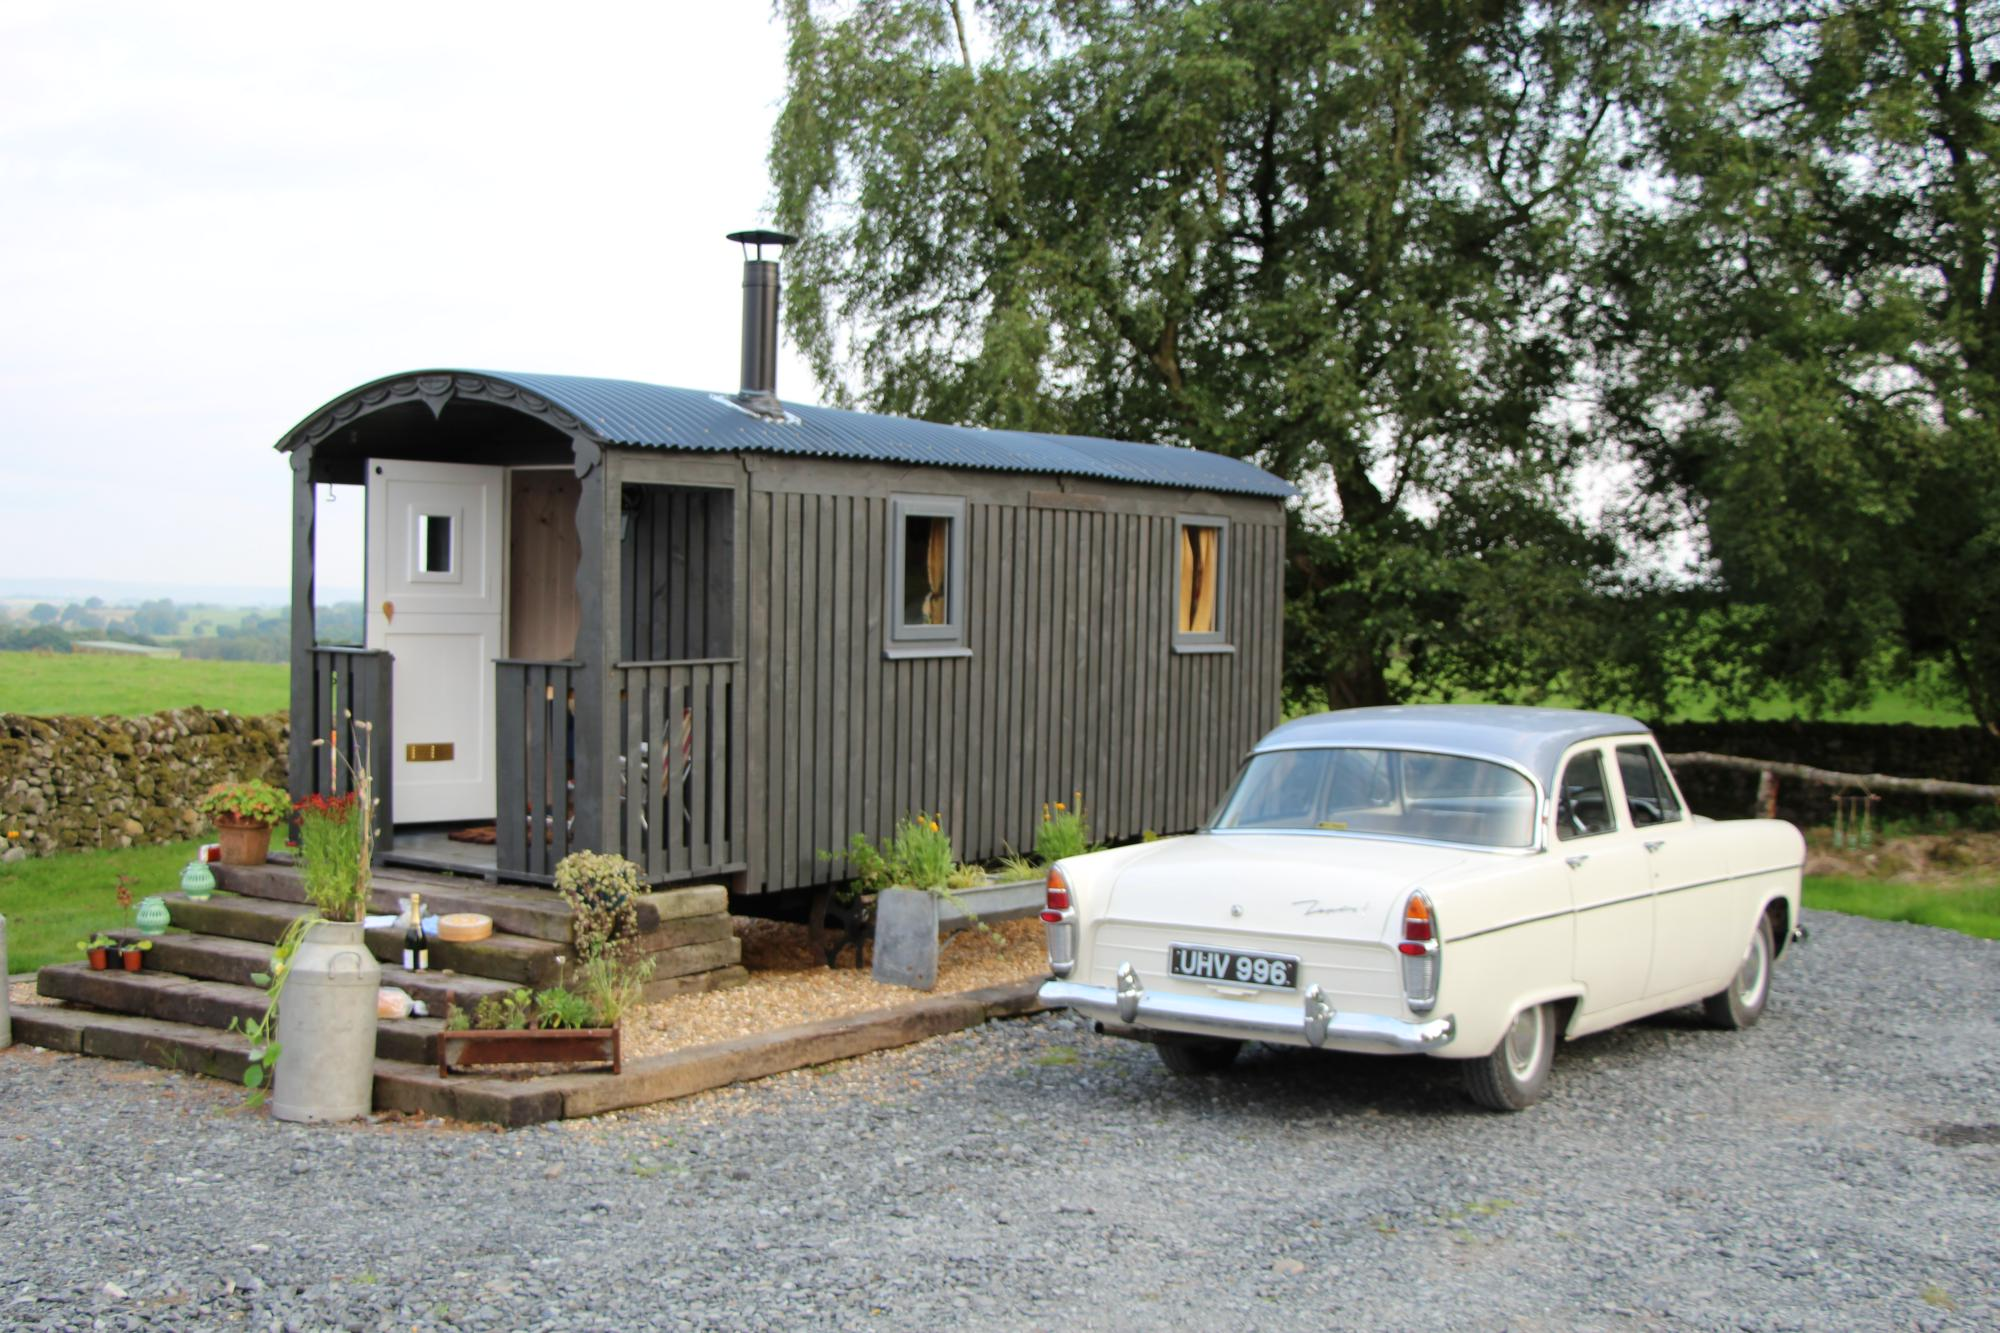 Campsites in North East England – Glampingly